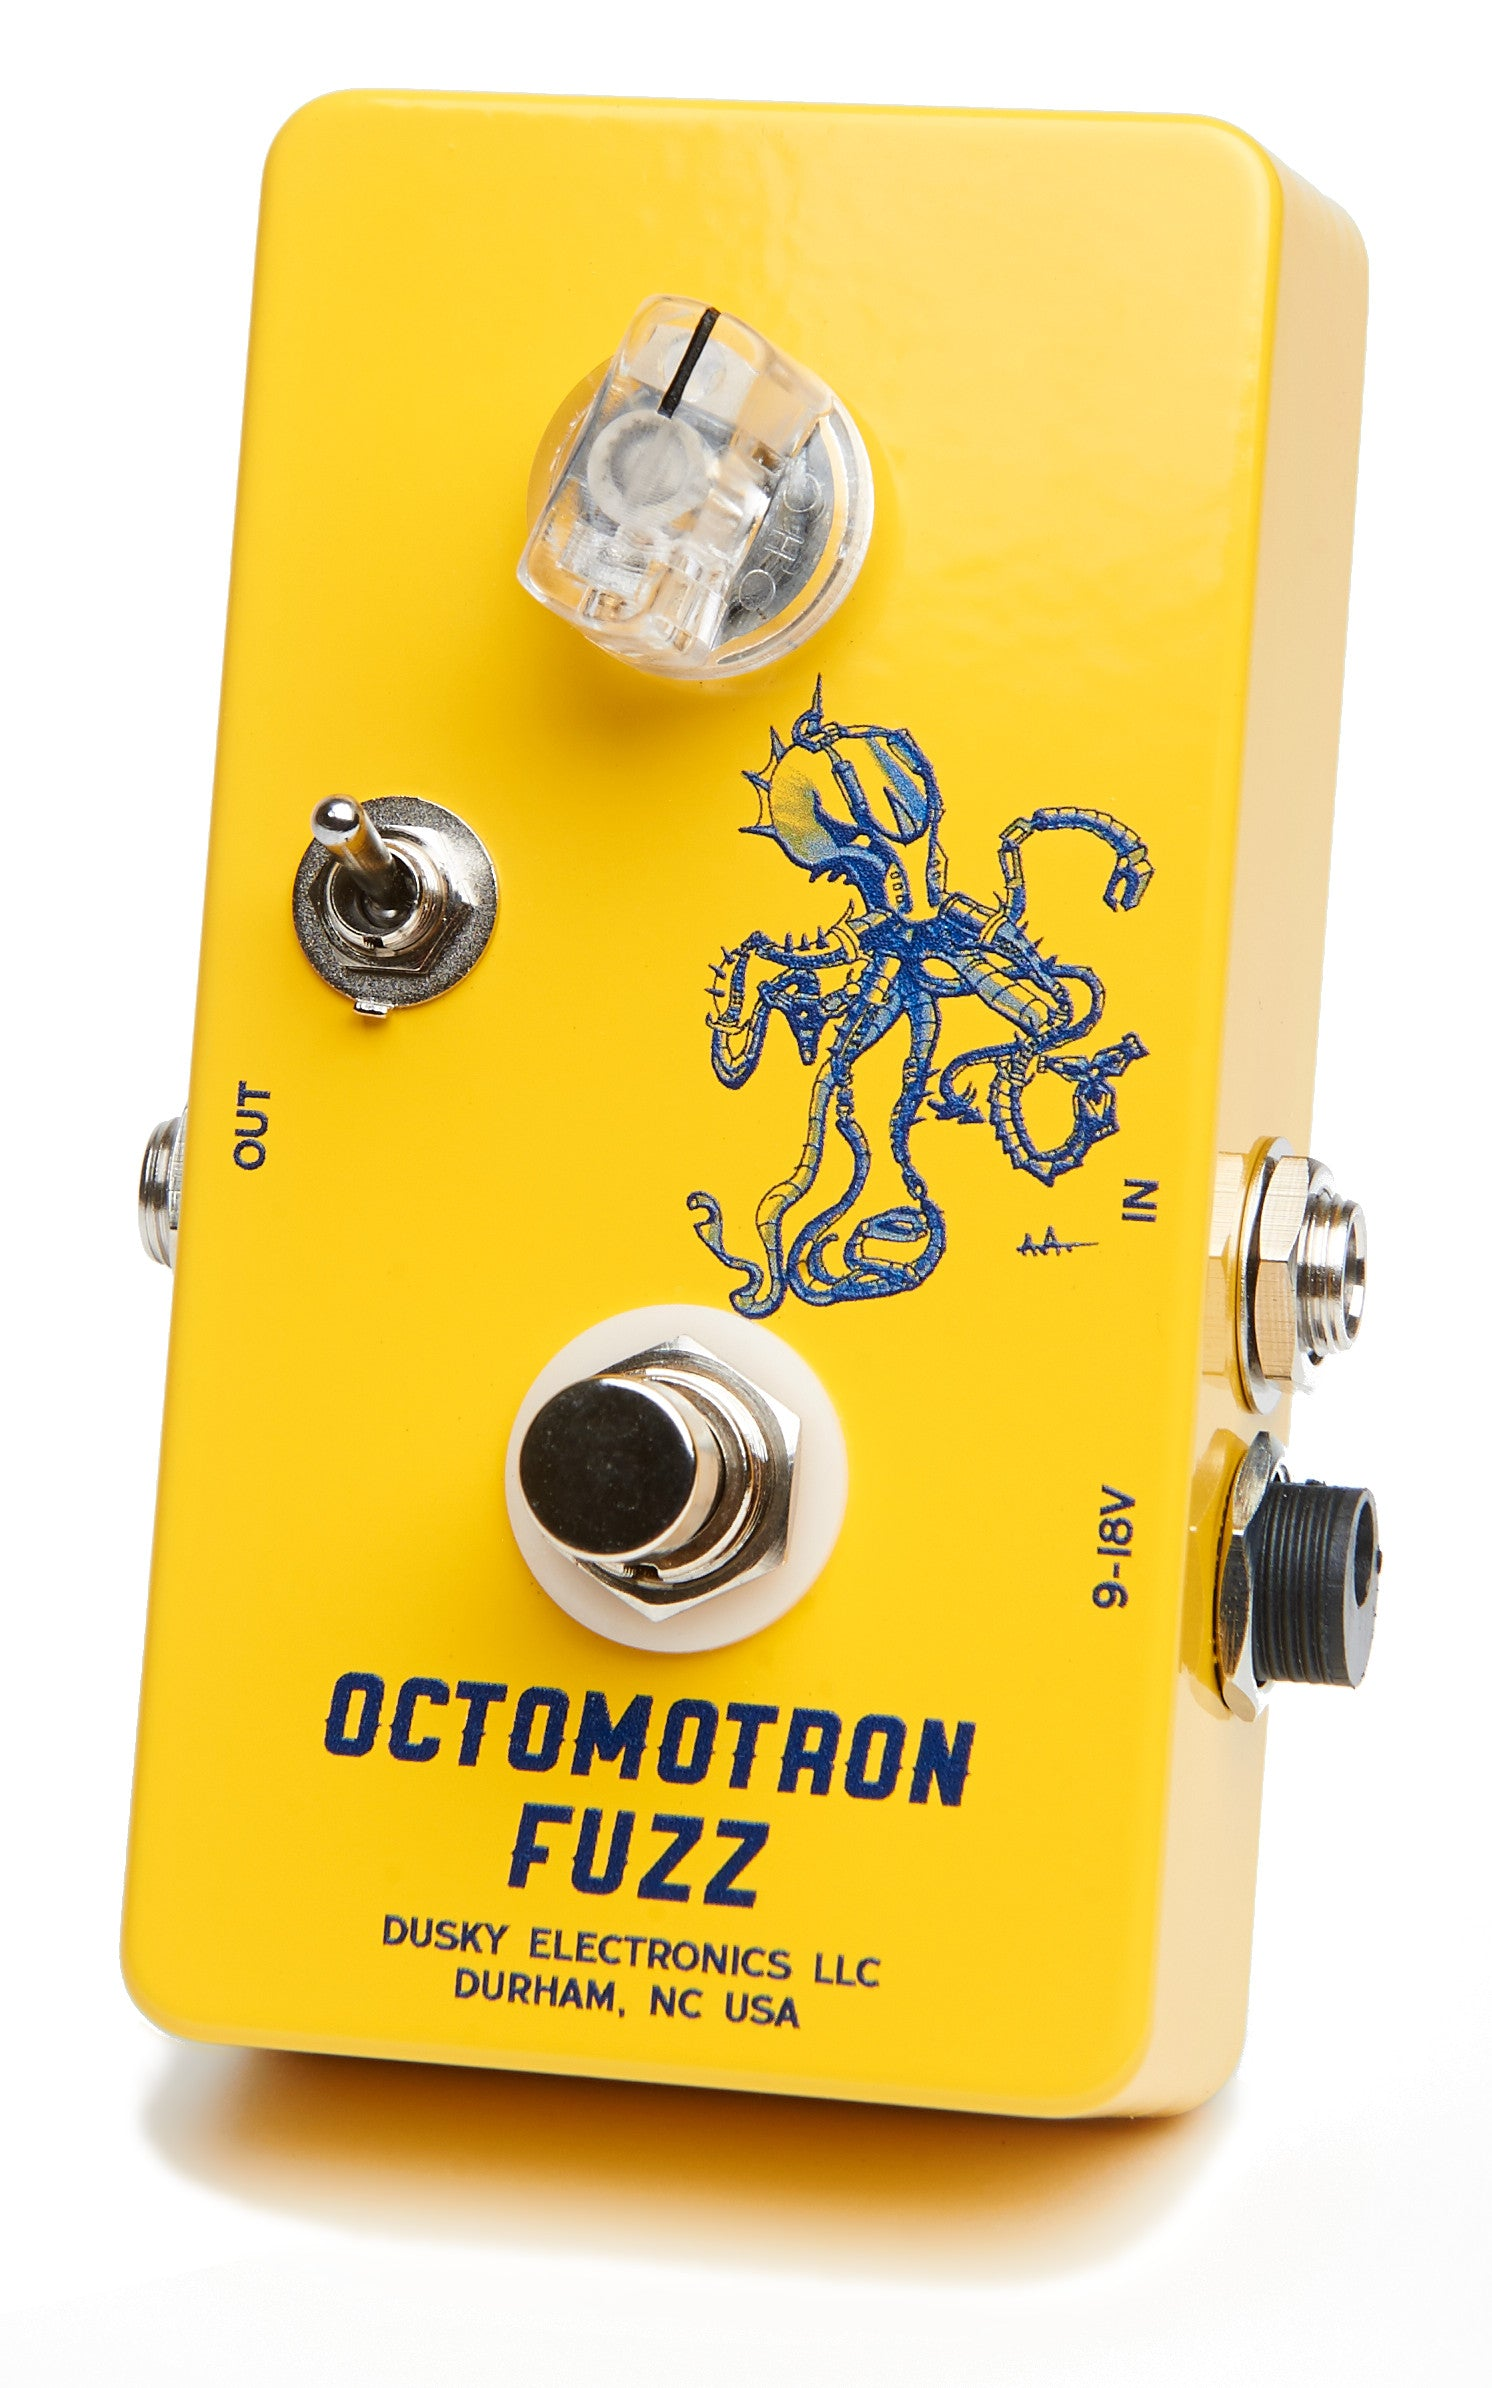 Octomotron: Fuzz